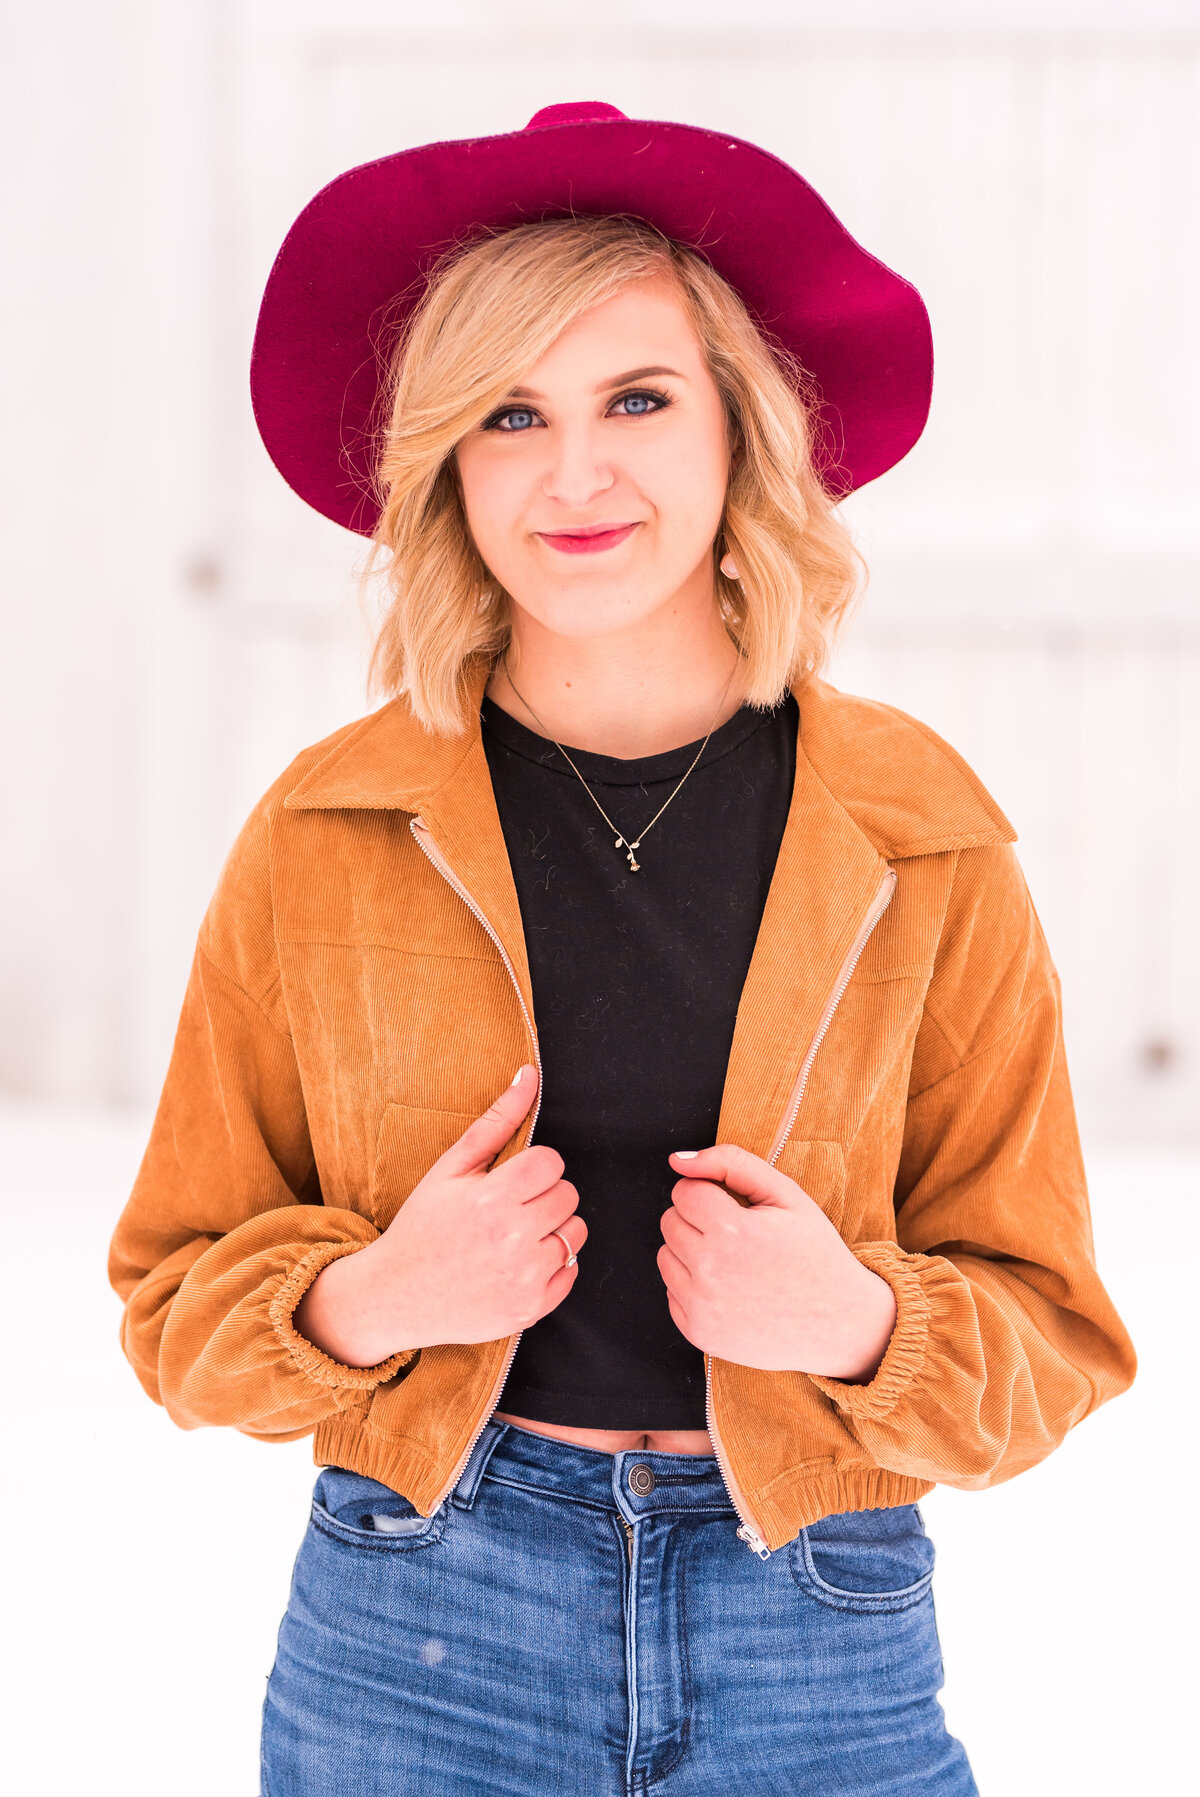 Tan Corduroy Jacket, Black Crop Top, and Maroon Hat